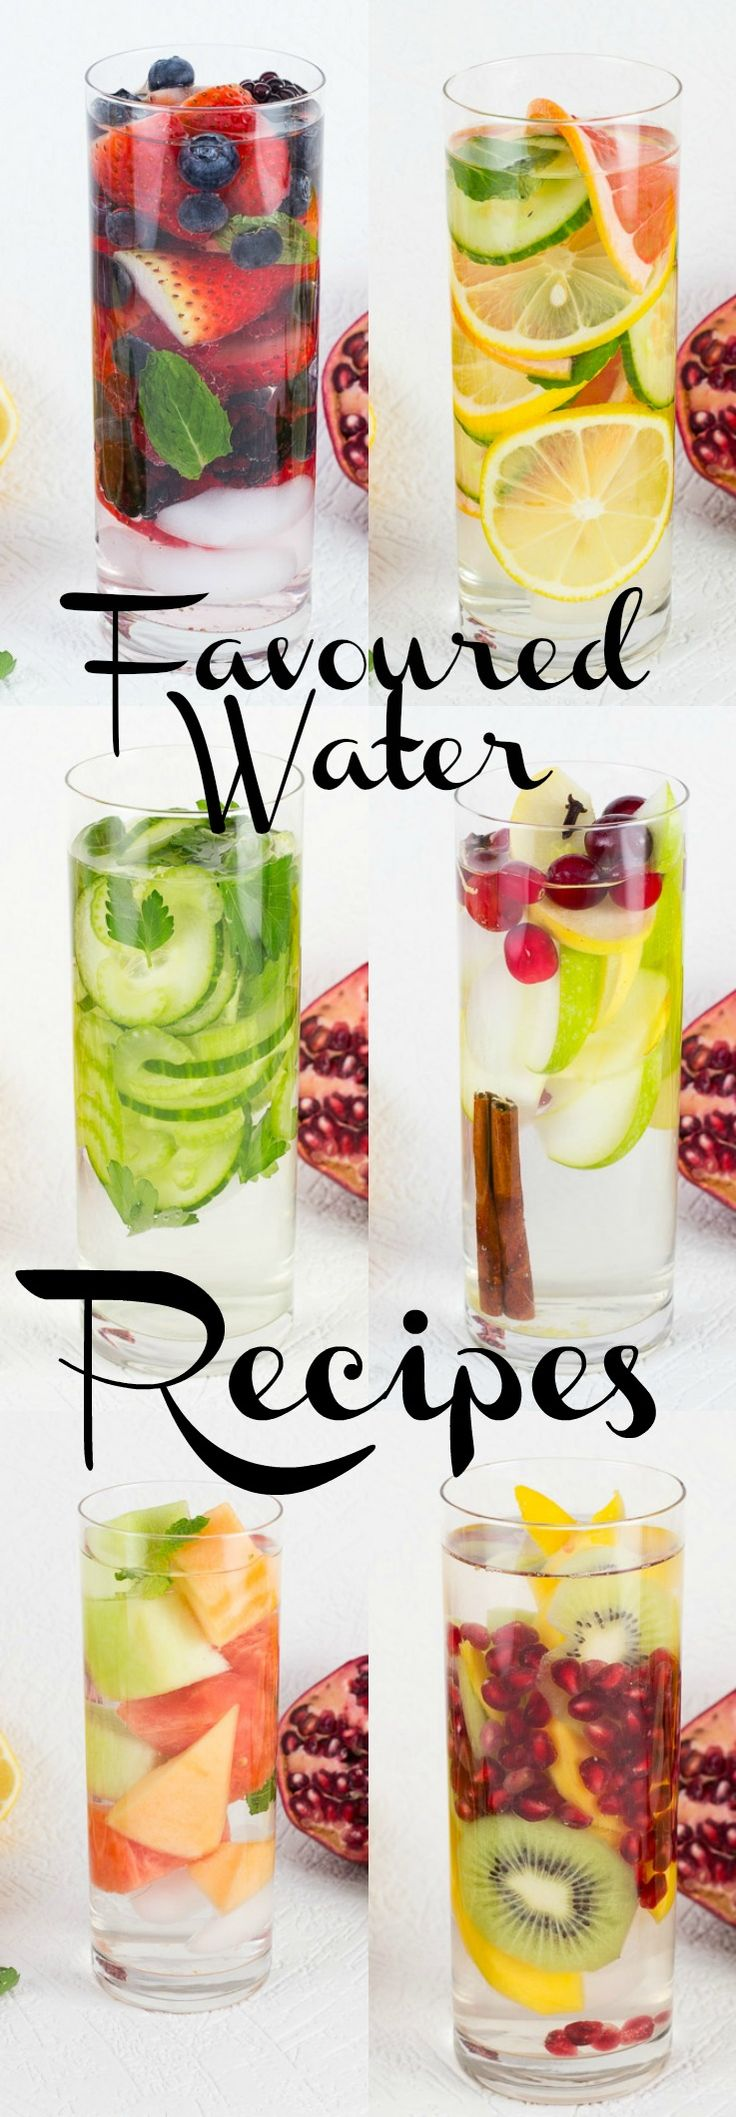 Simple,fresh fruits, vegetables and herbs in theseDiet Boost Flavored Water Recipes will help keep your diet on track.Seven days of delicious recipes will keep yousipping all day long. #flavoredwater #dietwater